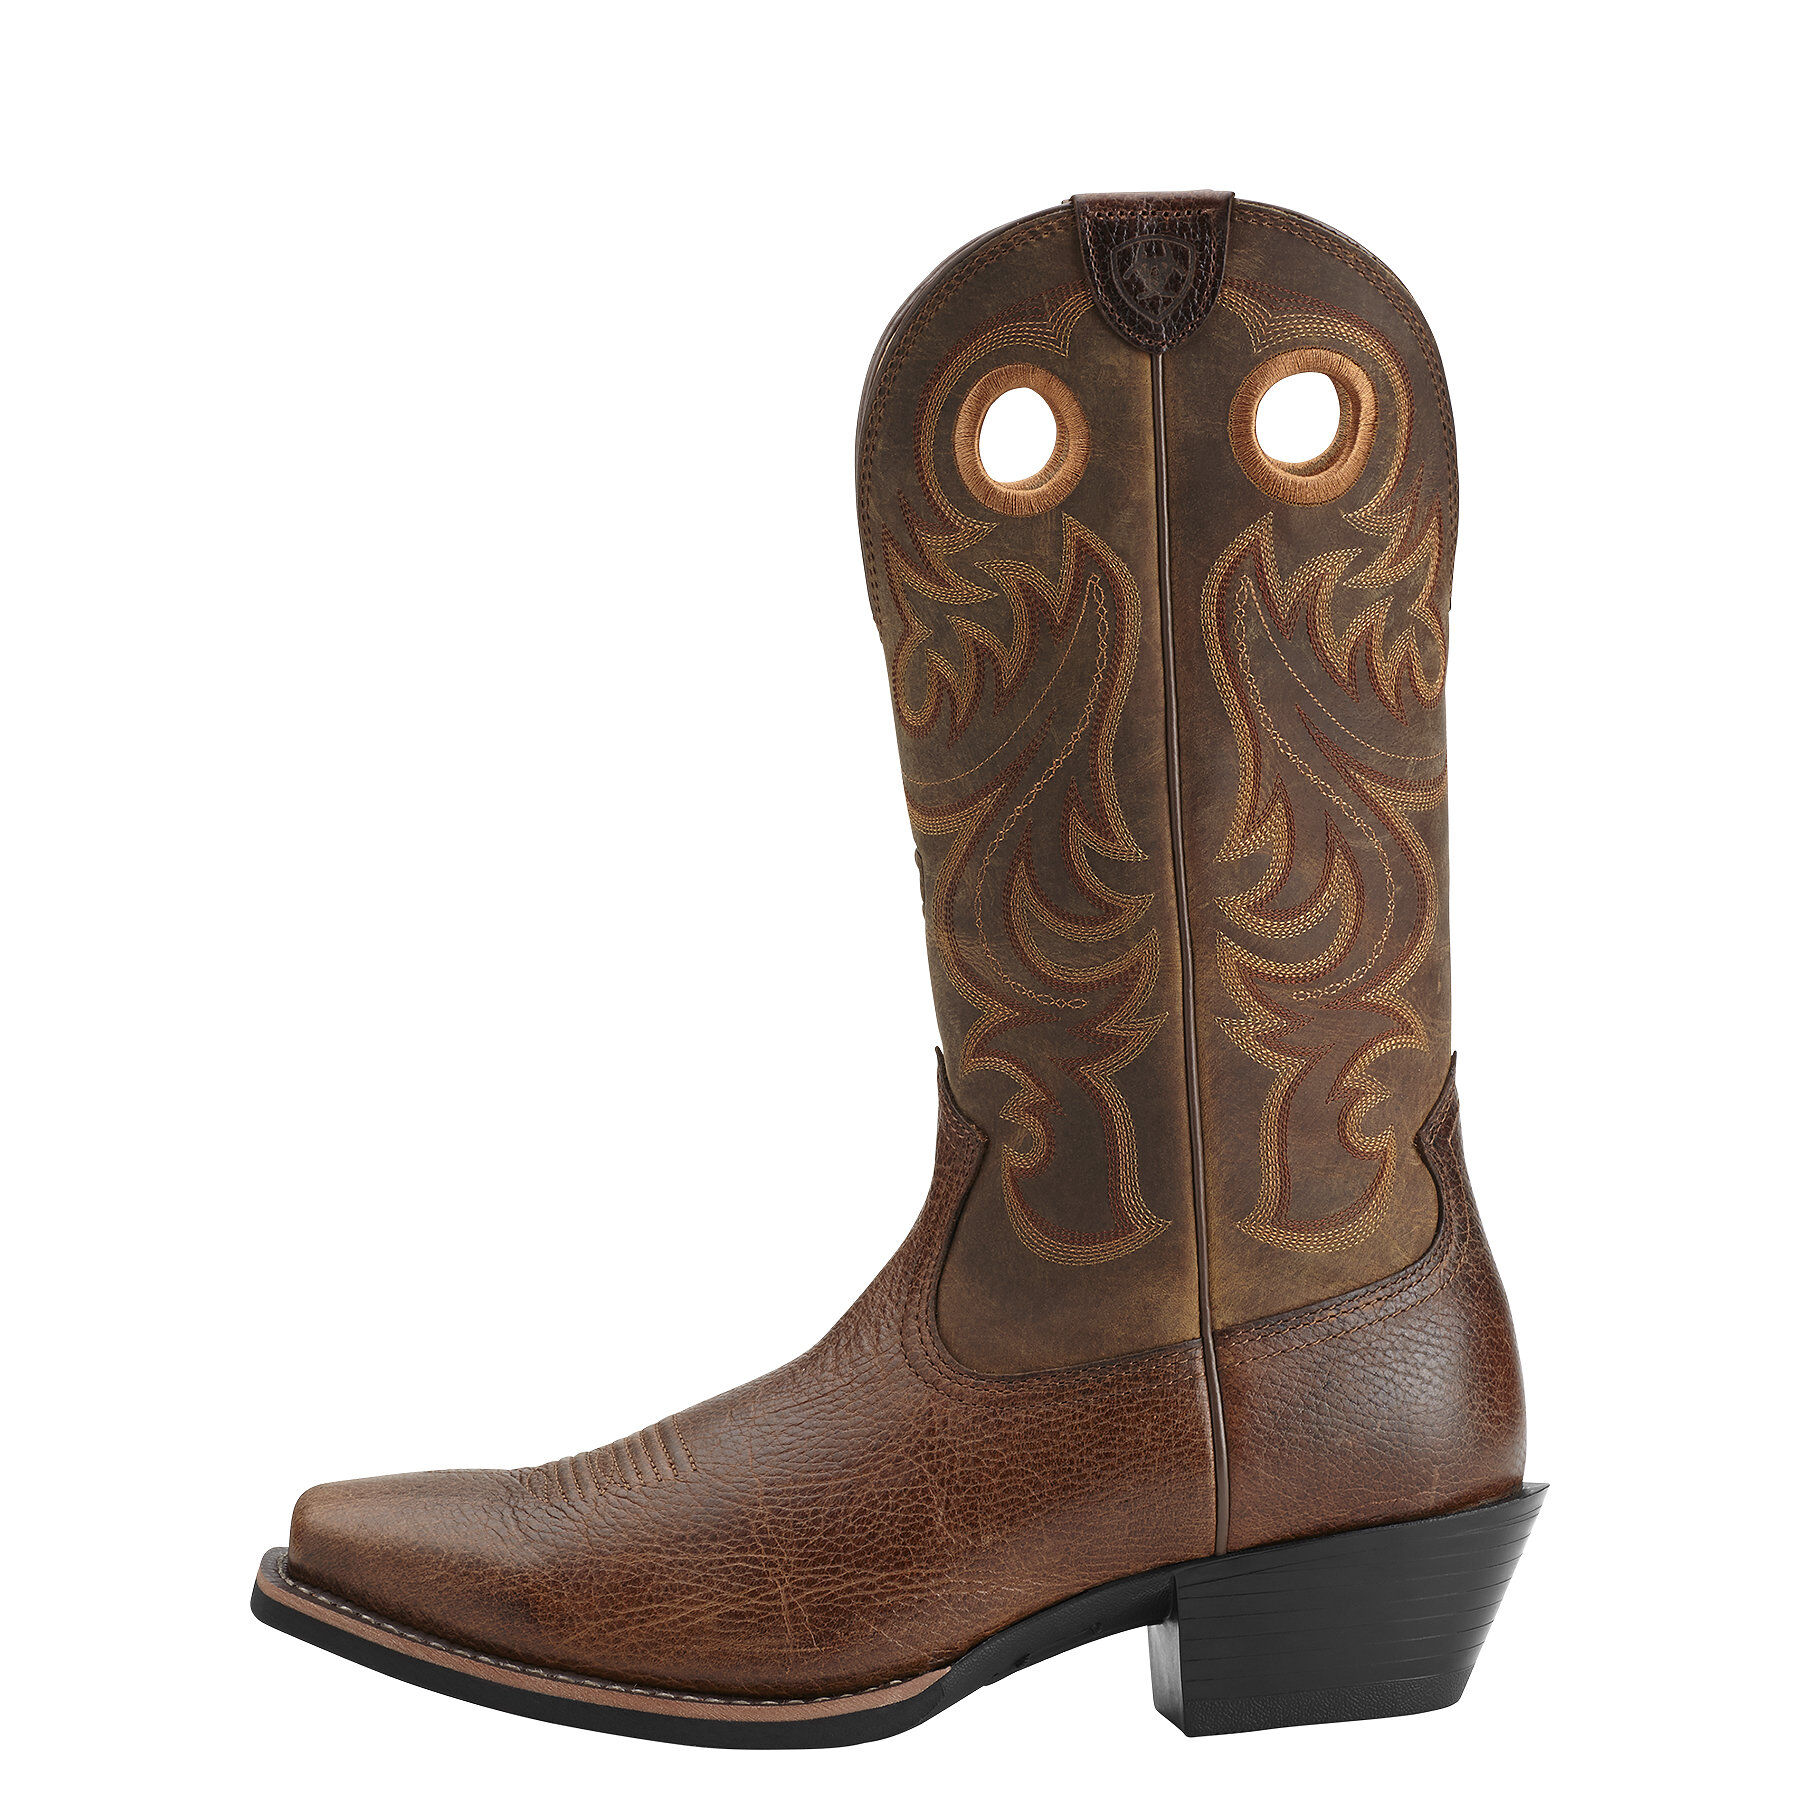 Sport Square Toe Western Boot | Ariat